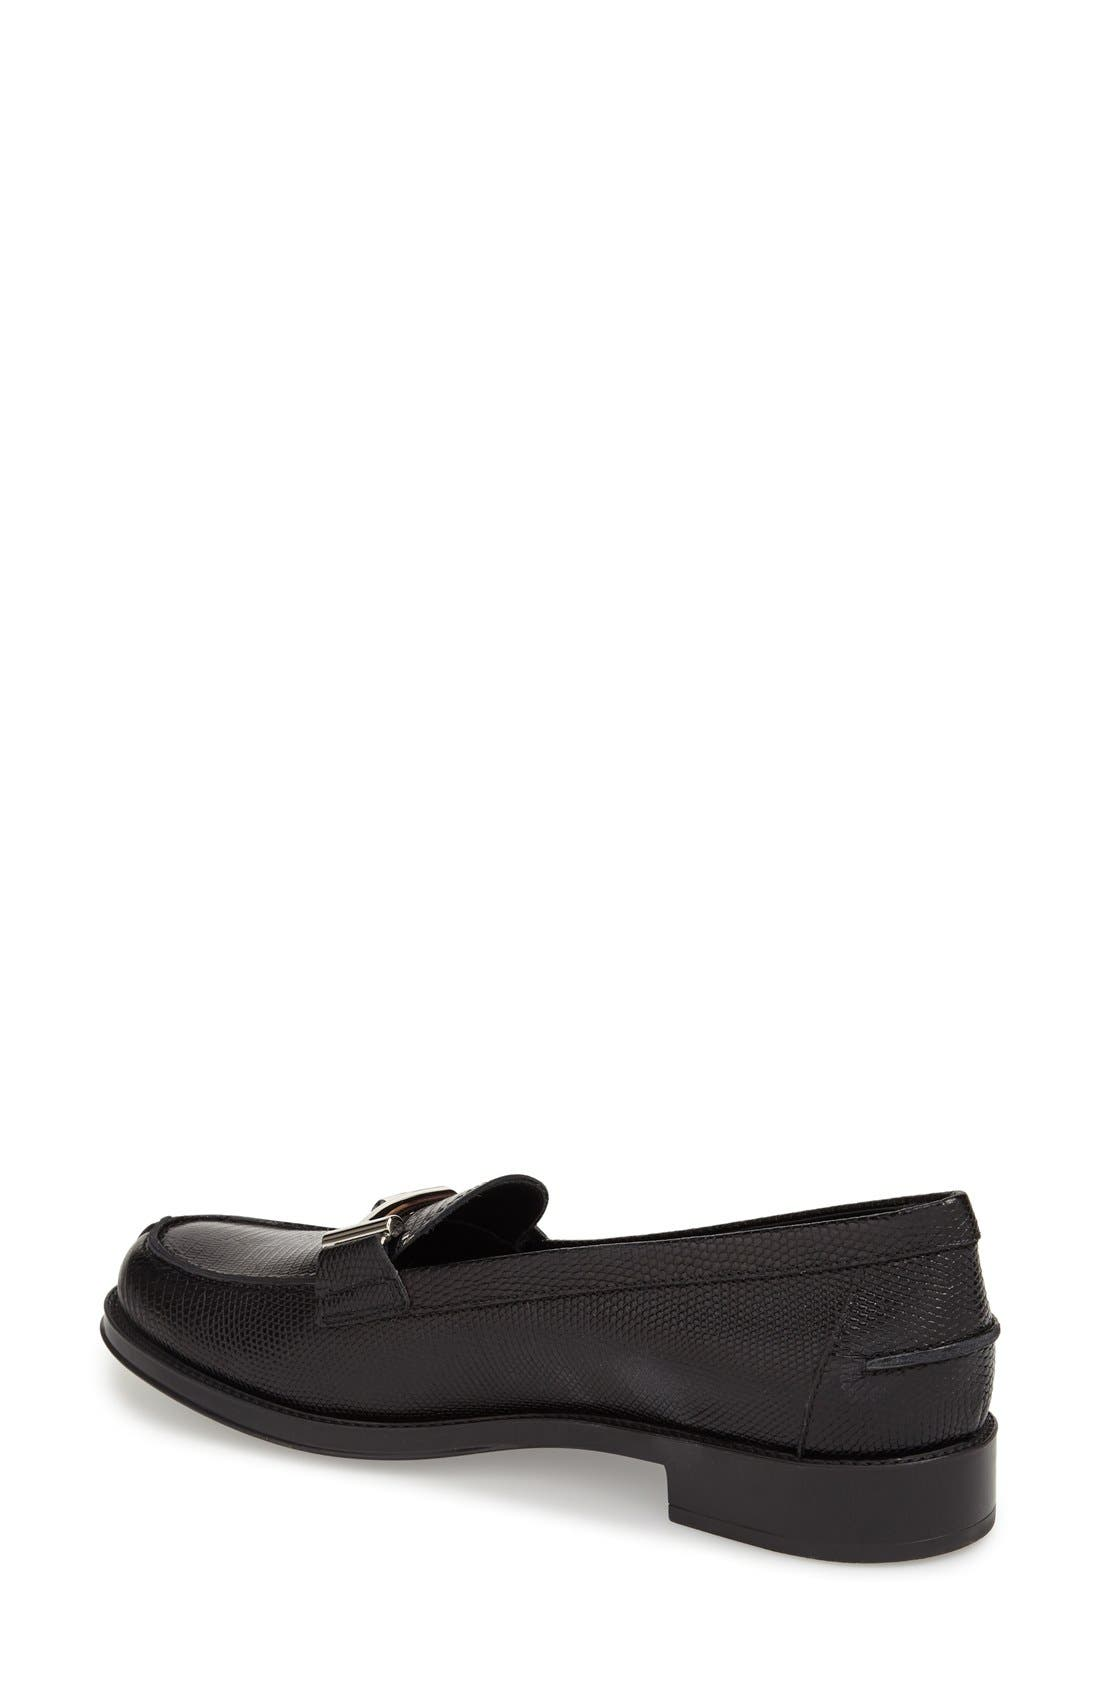 ,                             'Double T' Loafer,                             Alternate thumbnail 2, color,                             001